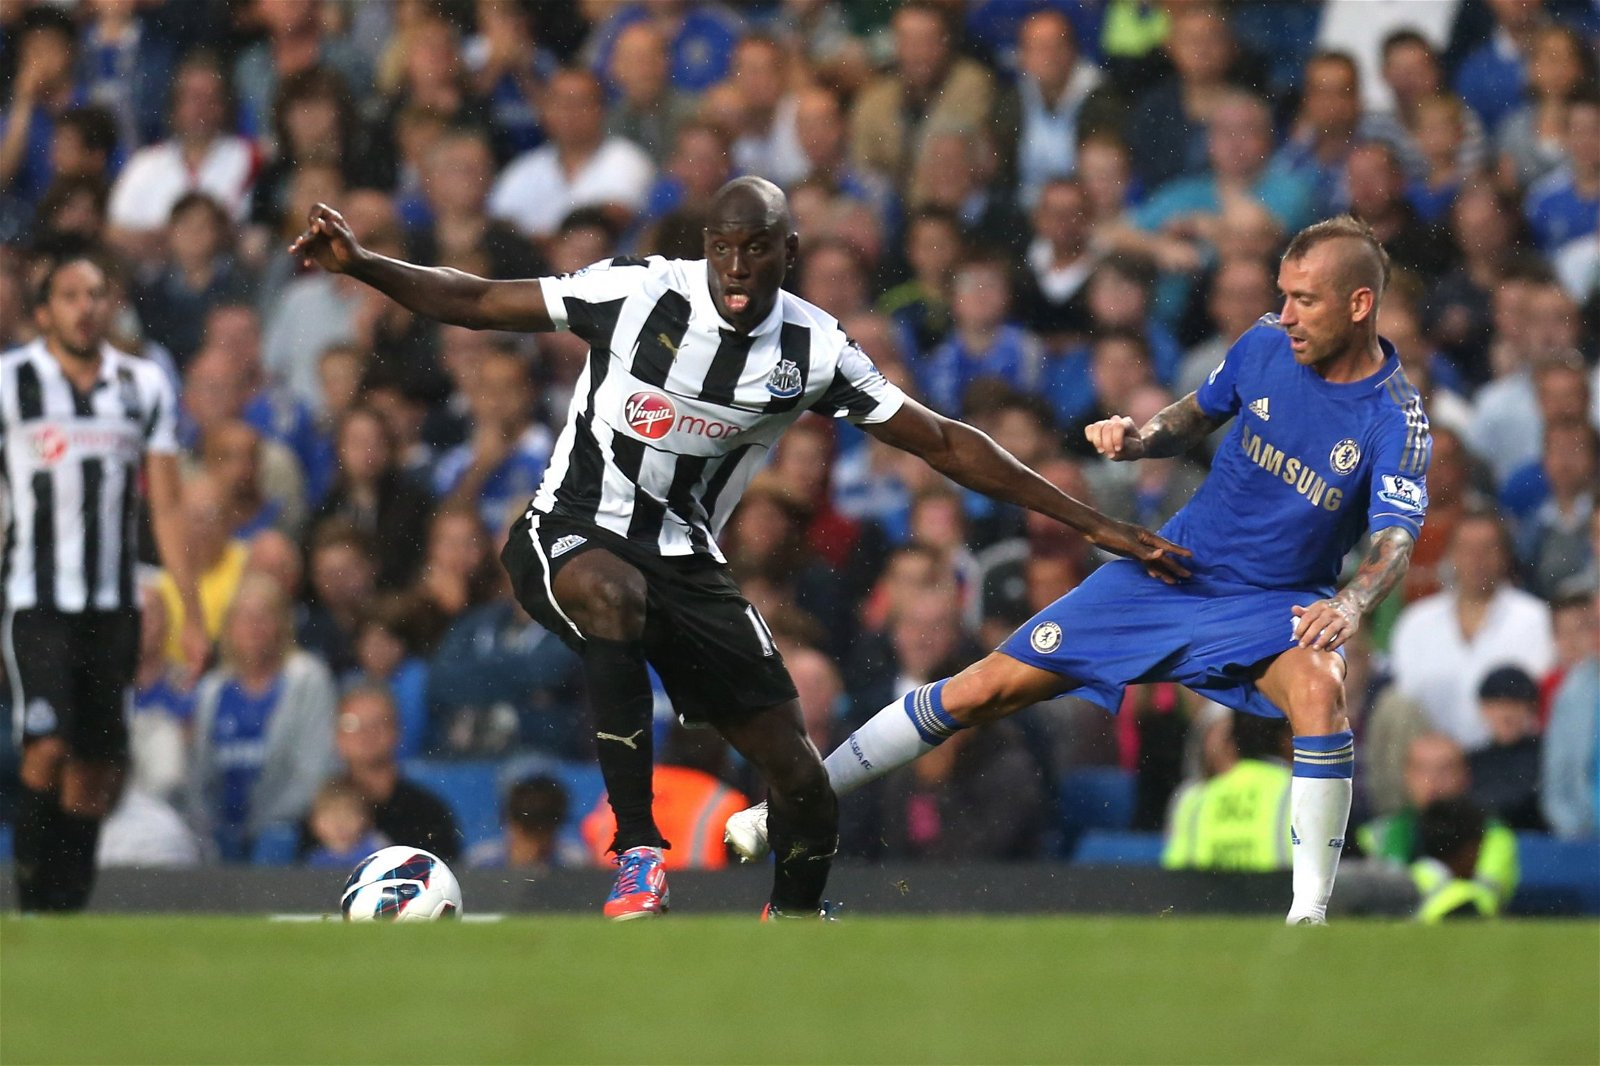 Demba Ba takes on Raul Meireles